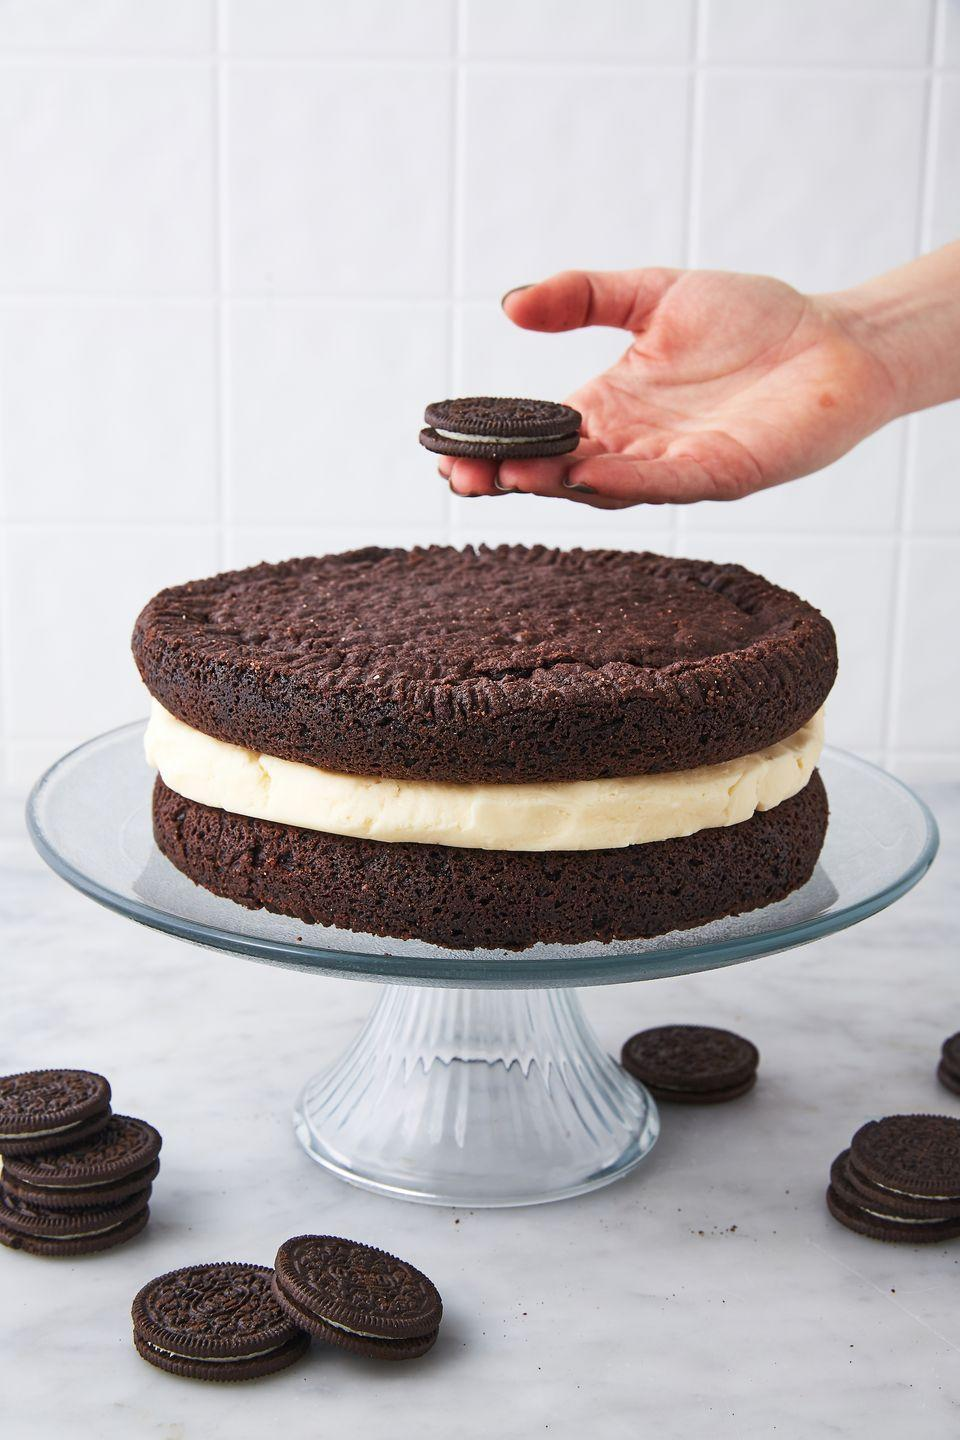 """<p>This is <em>way </em>beyond double stuffed.</p><p>Get the recipe from <a href=""""https://www.delish.com/cooking/recipe-ideas/recipes/a51819/giant-oreo-cake-recipe/"""" rel=""""nofollow noopener"""" target=""""_blank"""" data-ylk=""""slk:Delish"""" class=""""link rapid-noclick-resp"""">Delish</a>.</p>"""